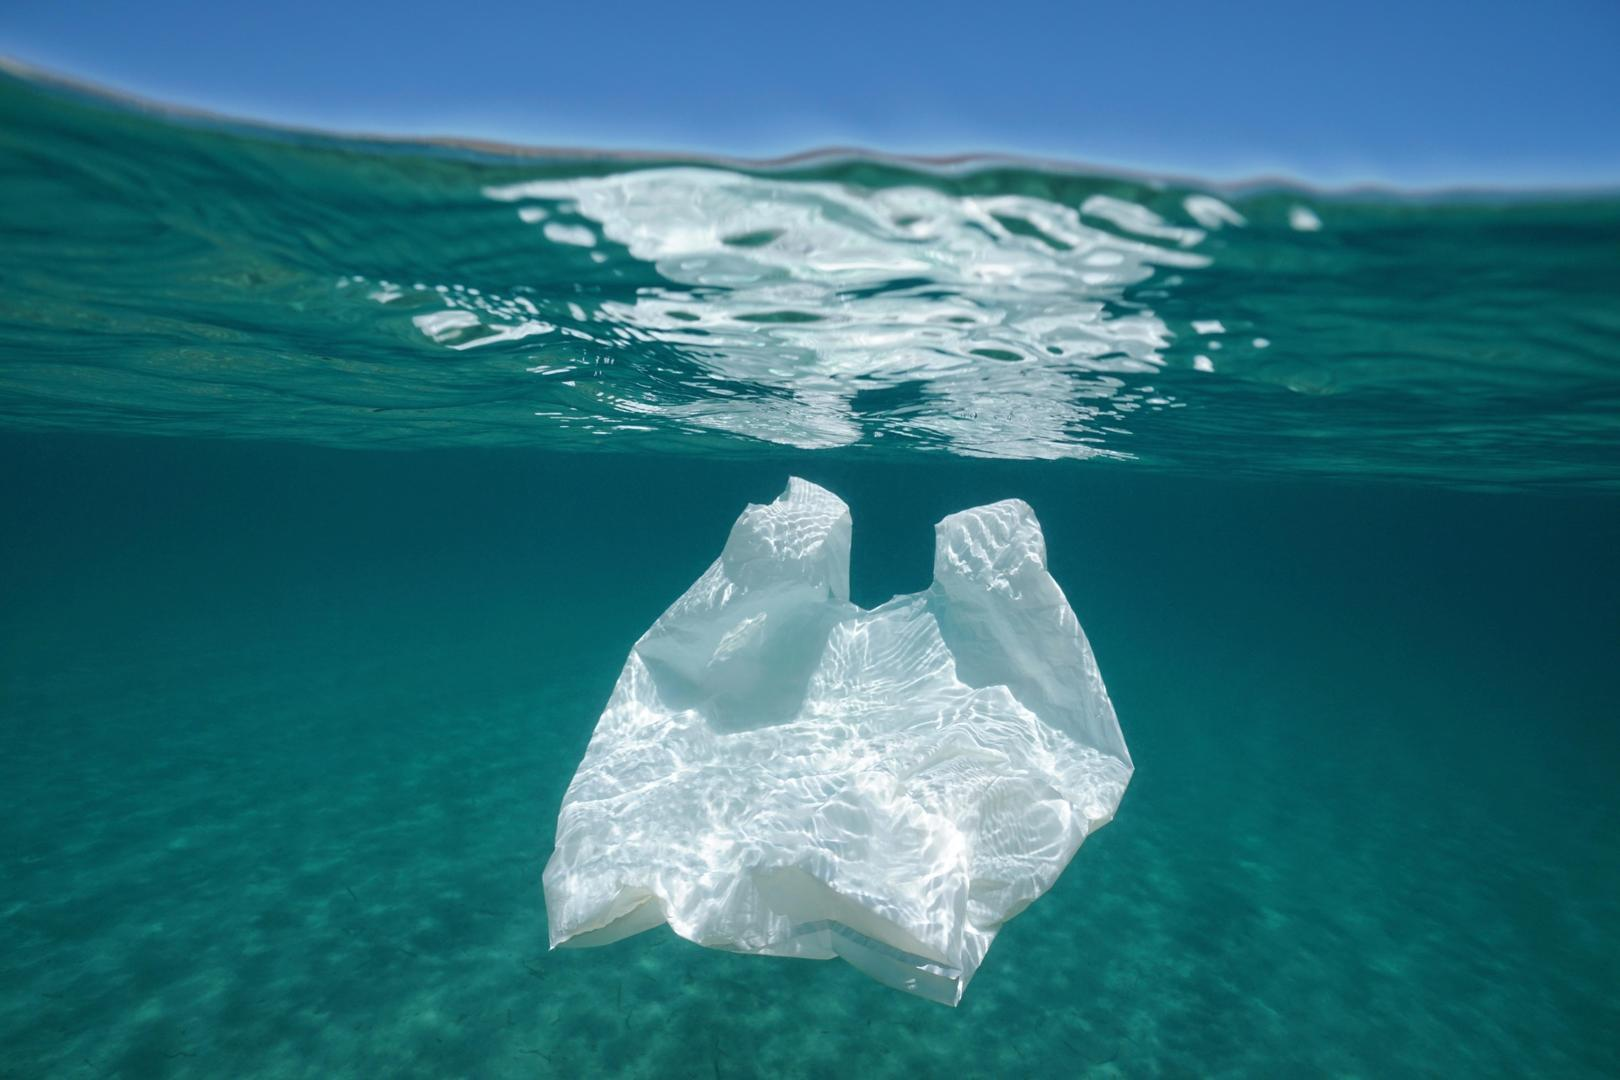 WE NEED TO KEEP THE BEACHS AND OCEANS FREE PLASTIC.